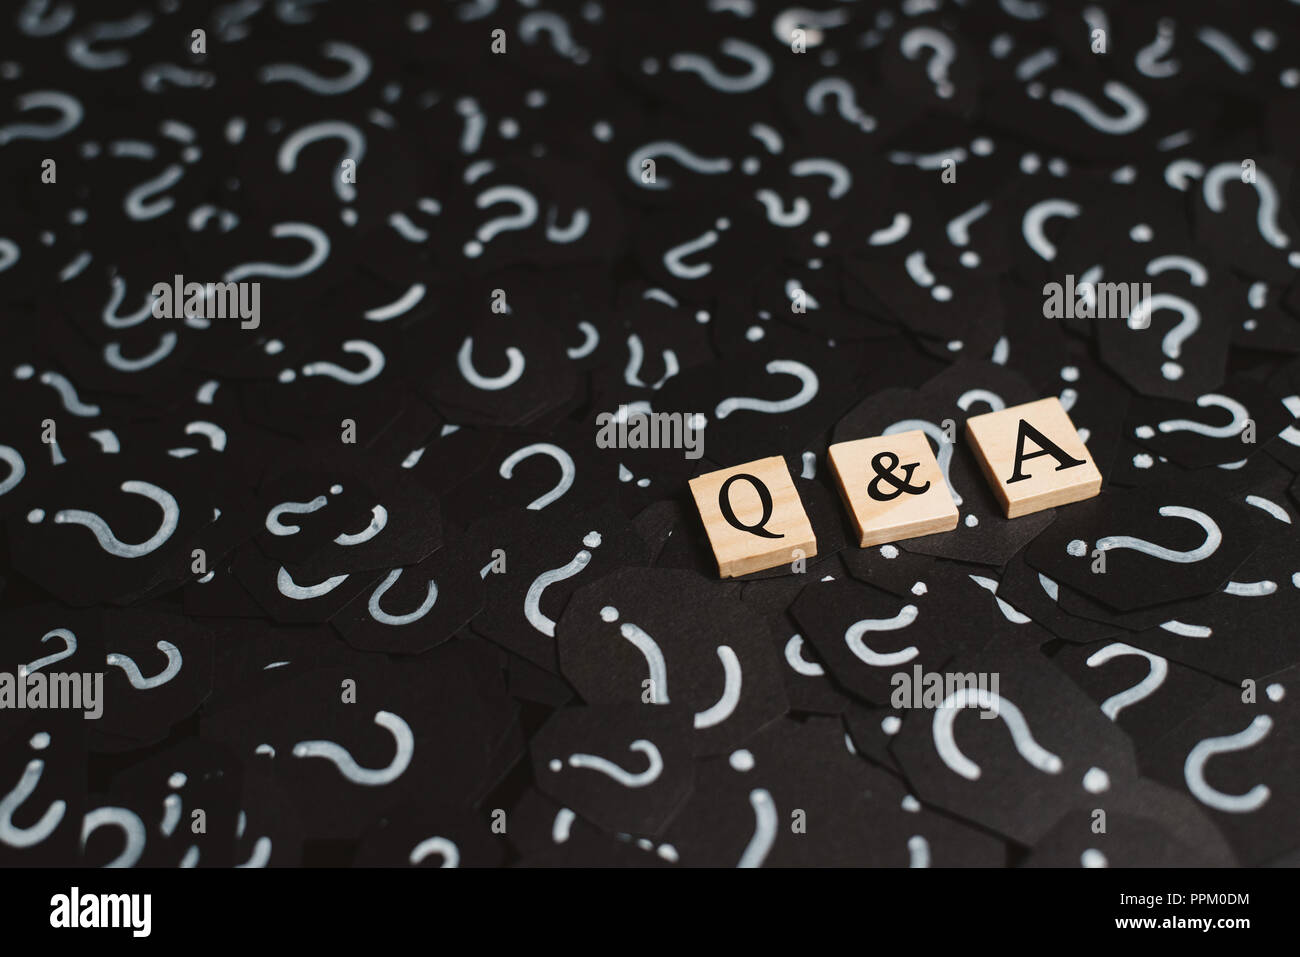 wooden alphabet tiles with Q&A letter on black paper with QUESTION MARK. Concept of Question and Answer Q&A online assist - Stock Image